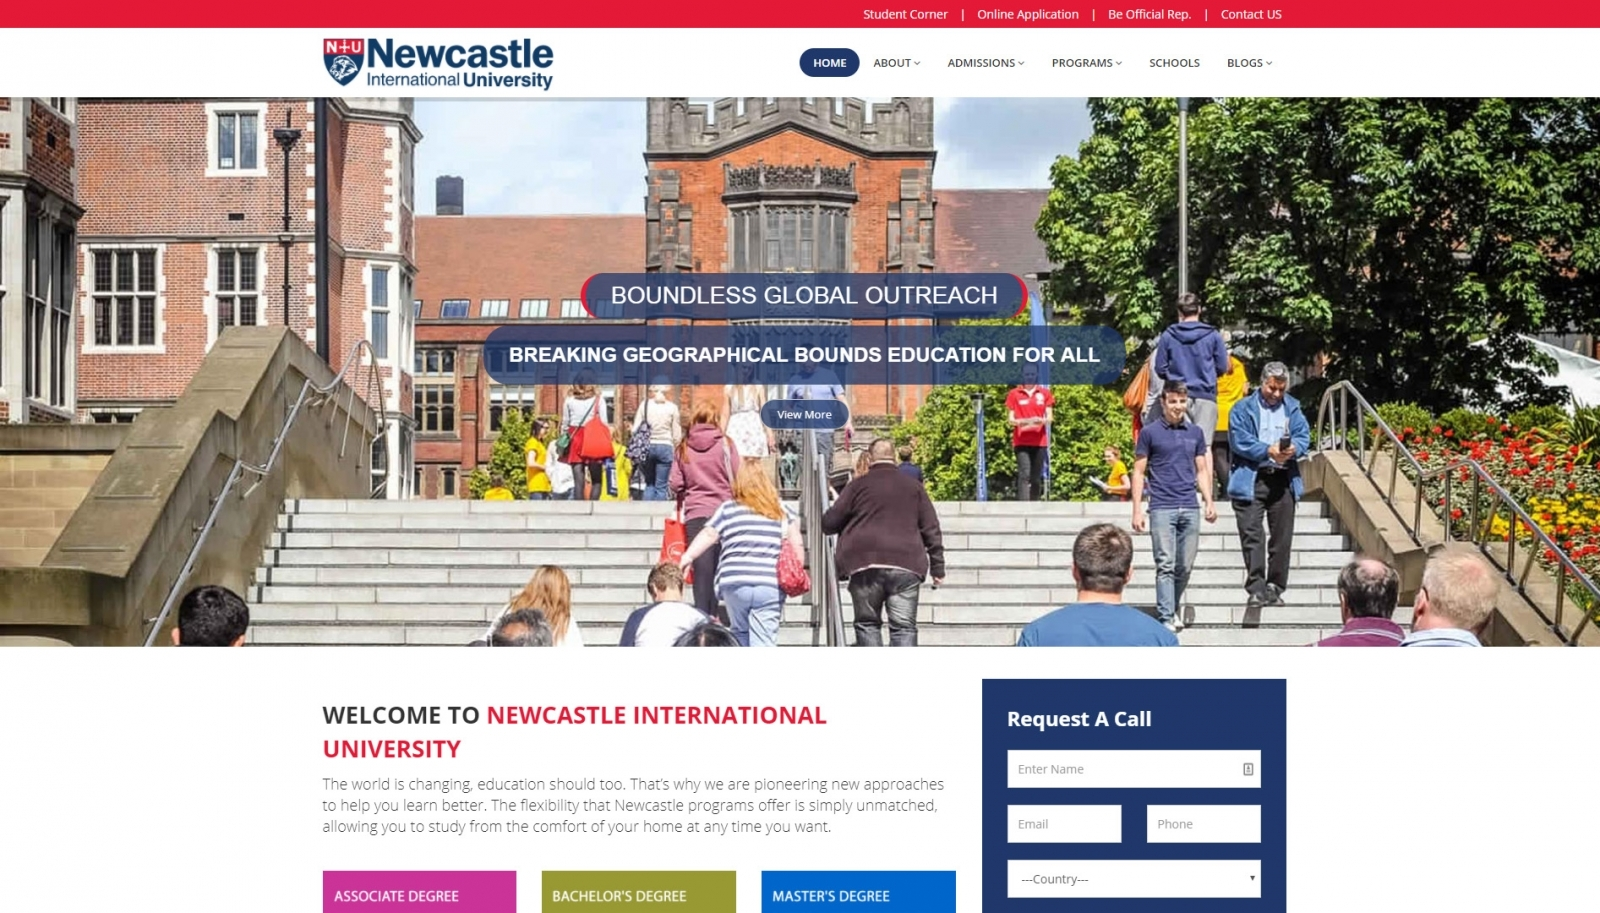 The fake Newcastle University website